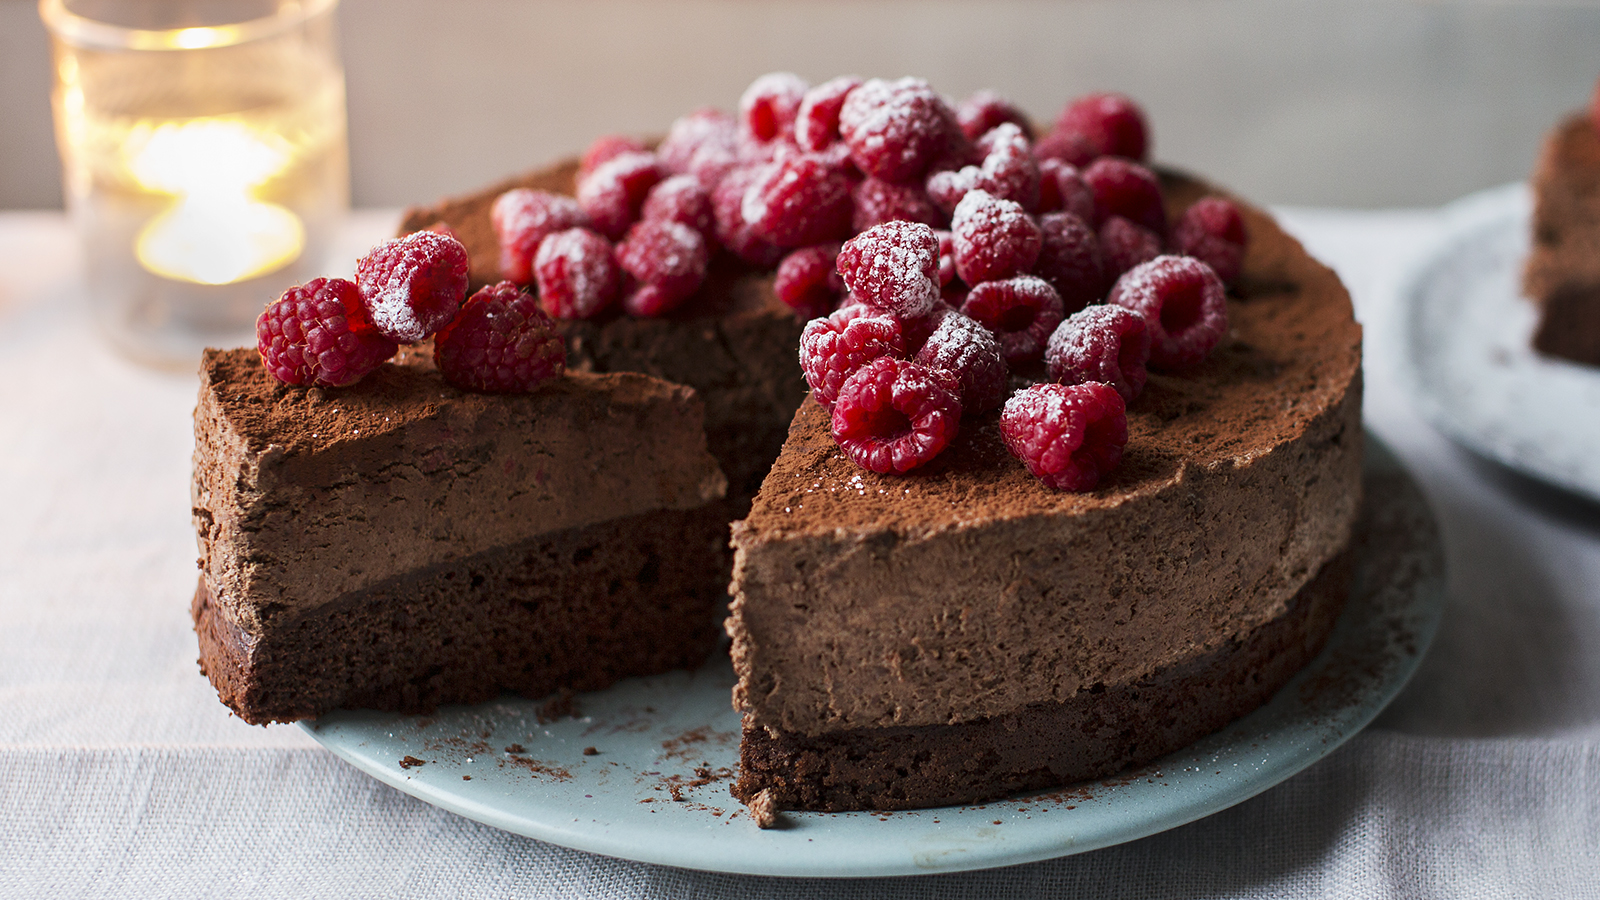 Celebration Chocolate Mousse Cake Recipe